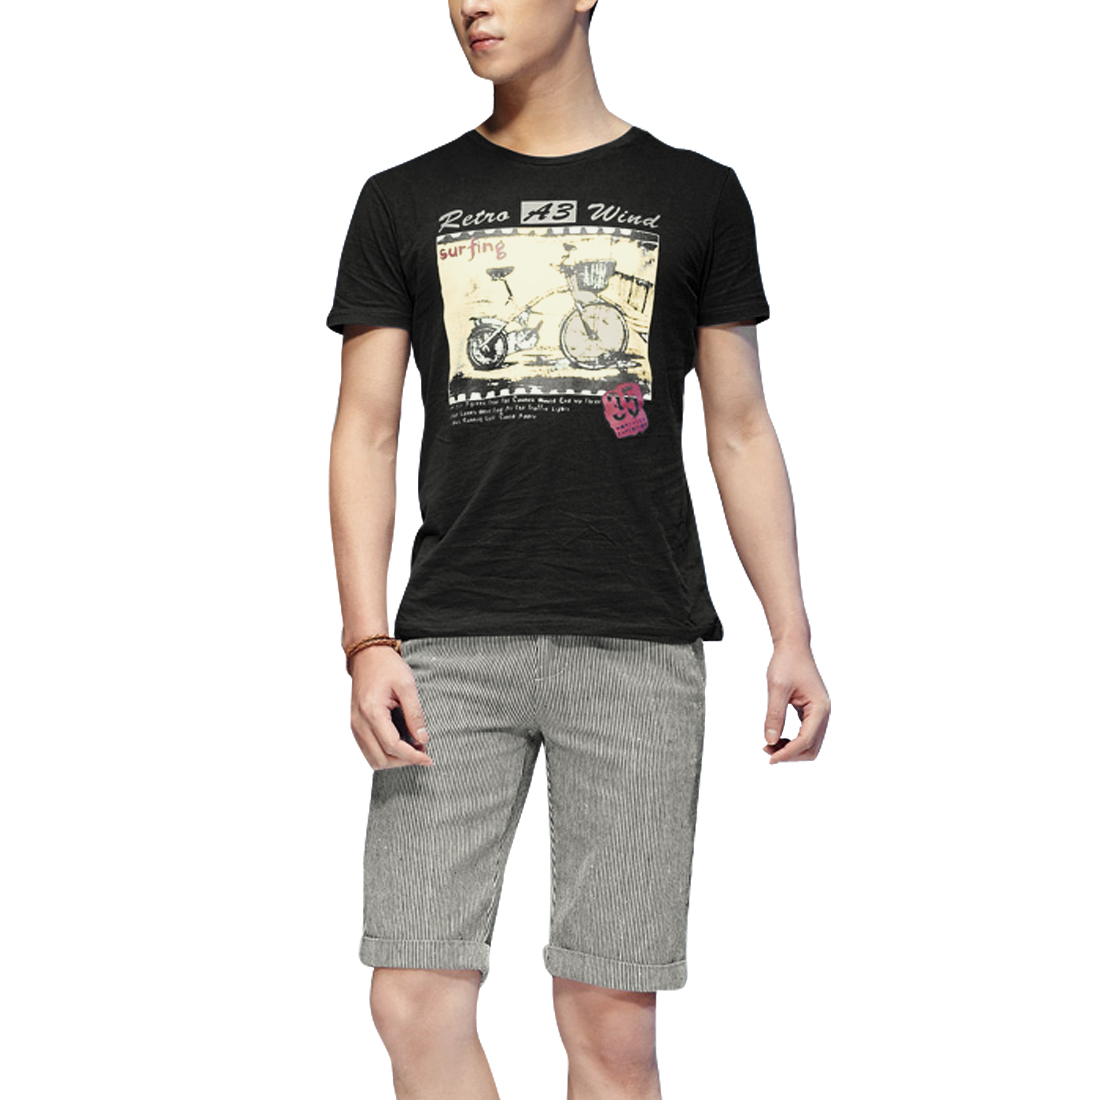 Men Round Neck Short Sleeve Letters and Bicycle Pattern Black T-Shirt M